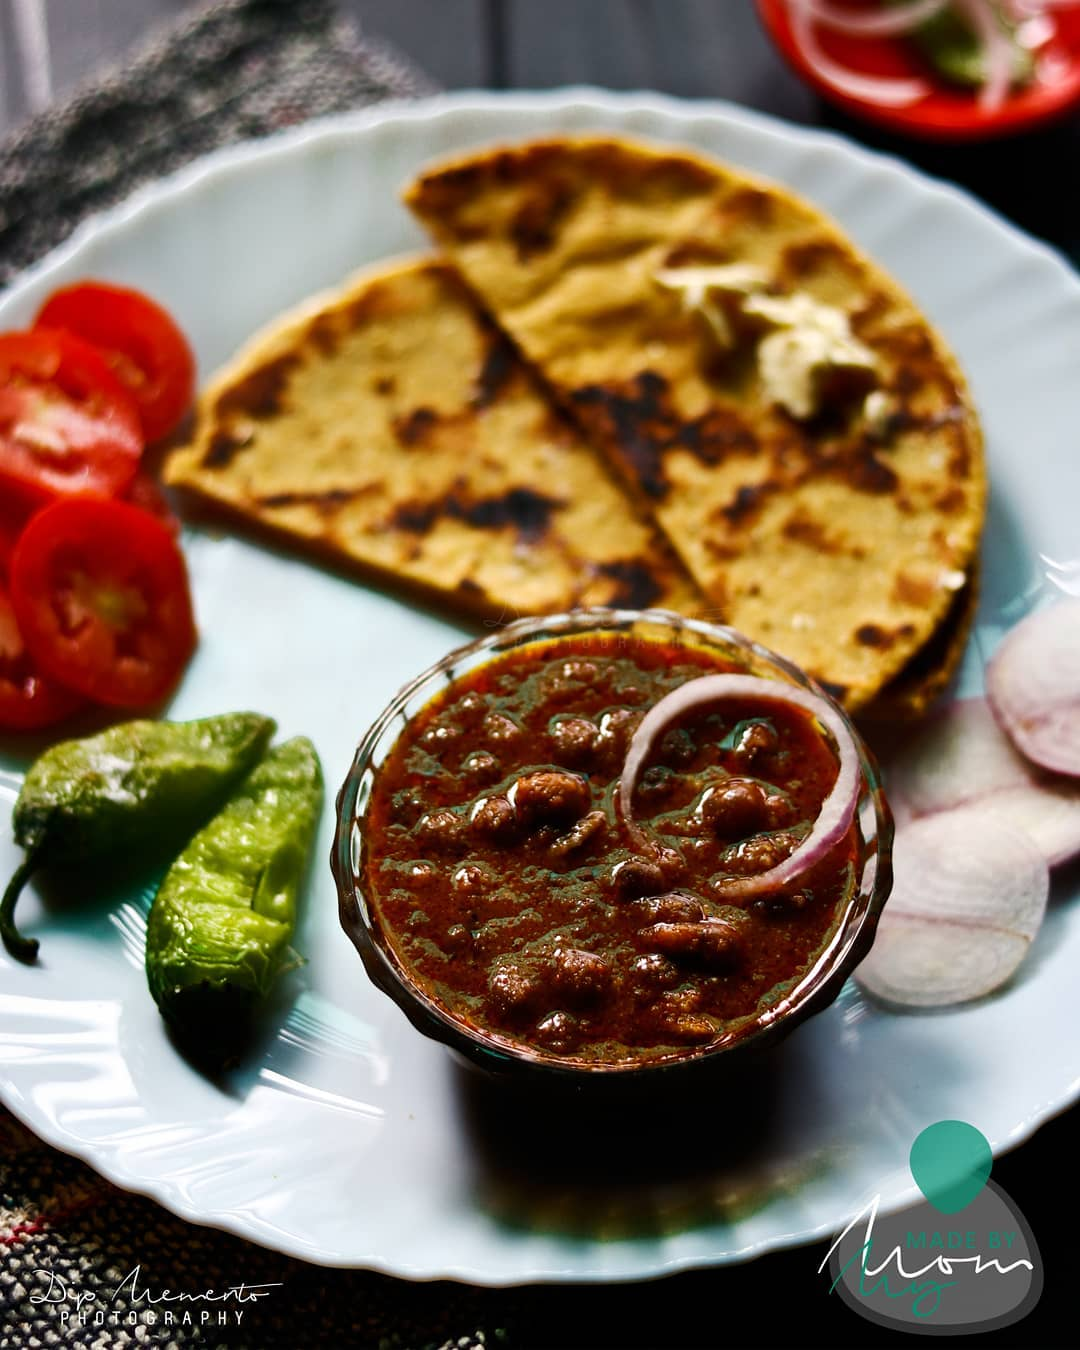 Tuver (Thotha) tadka masala + Makke-da-Rotla.. With green fried chilly and salads ... sounds different ?? But testy full tummy filler.. Yummmm👌😋😋Test.. .. From #madebymom #gujjufood  How many of you like it?? . 🥒🥒🥒🍋🍋🍋🥔🥔🌶🌶 Food Shoot :@dip_memento_photography 🥒🥒🍋🍋🍋🥔🥔🌶🌶 .  #ahmedabad  #hungrito #foodporn #foodphotography #happymood  #happiness #foodpic #foodoftheday #foodlover #foodie #foodlove #foodporn #hungrito #productPhotography #Productshoot #foodclicks #aighungrito  #fooddi #happyPeople  #picoftheday #photoholic #magazine #magazineshoot  #magazinephotography #ahmedabadifoodholics